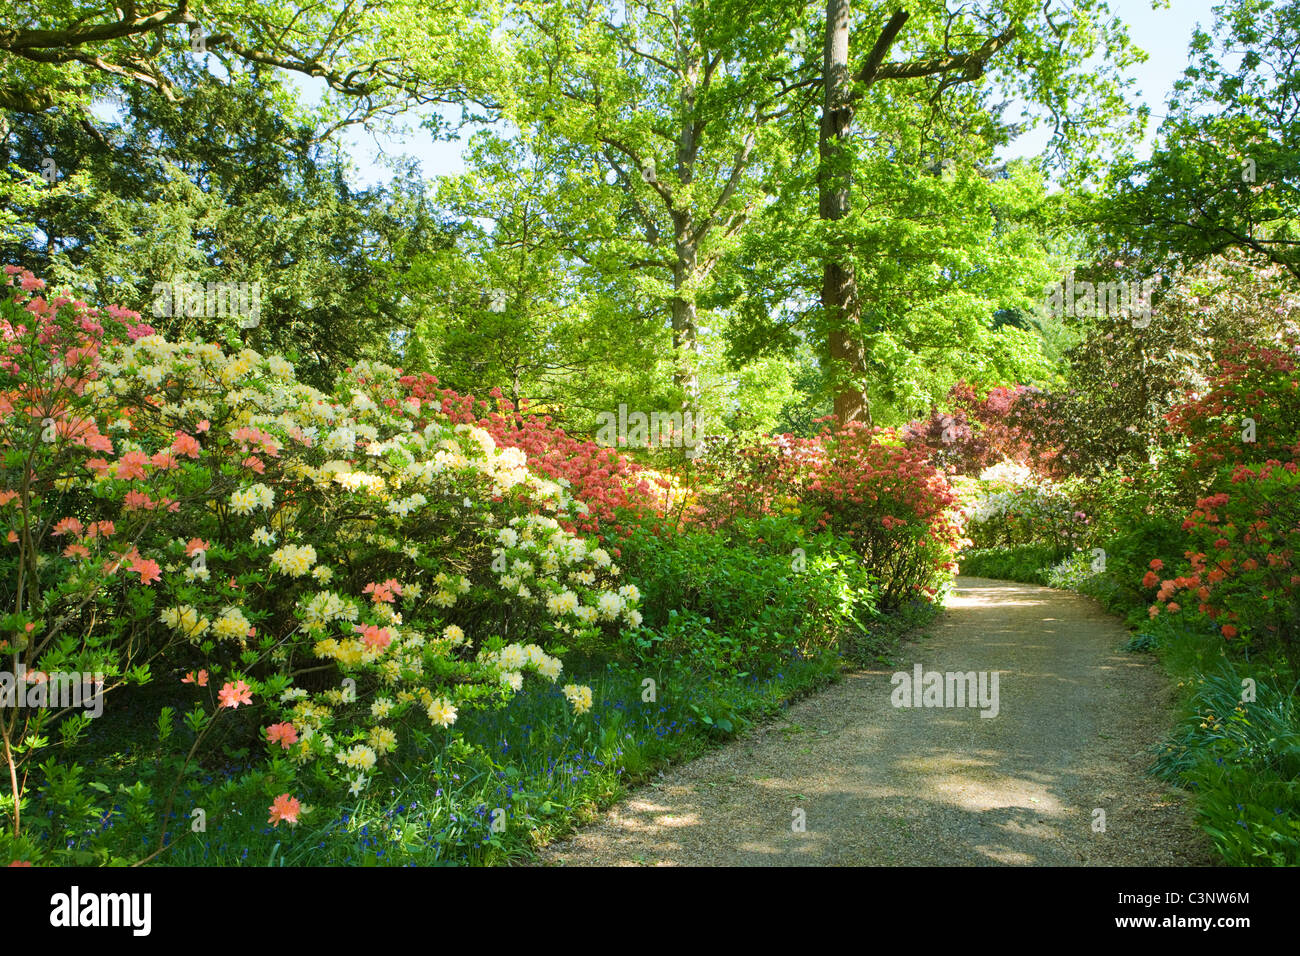 Jardin avec Rhododendrons, Coverwood ferme, Surrey, UK. Photo Stock